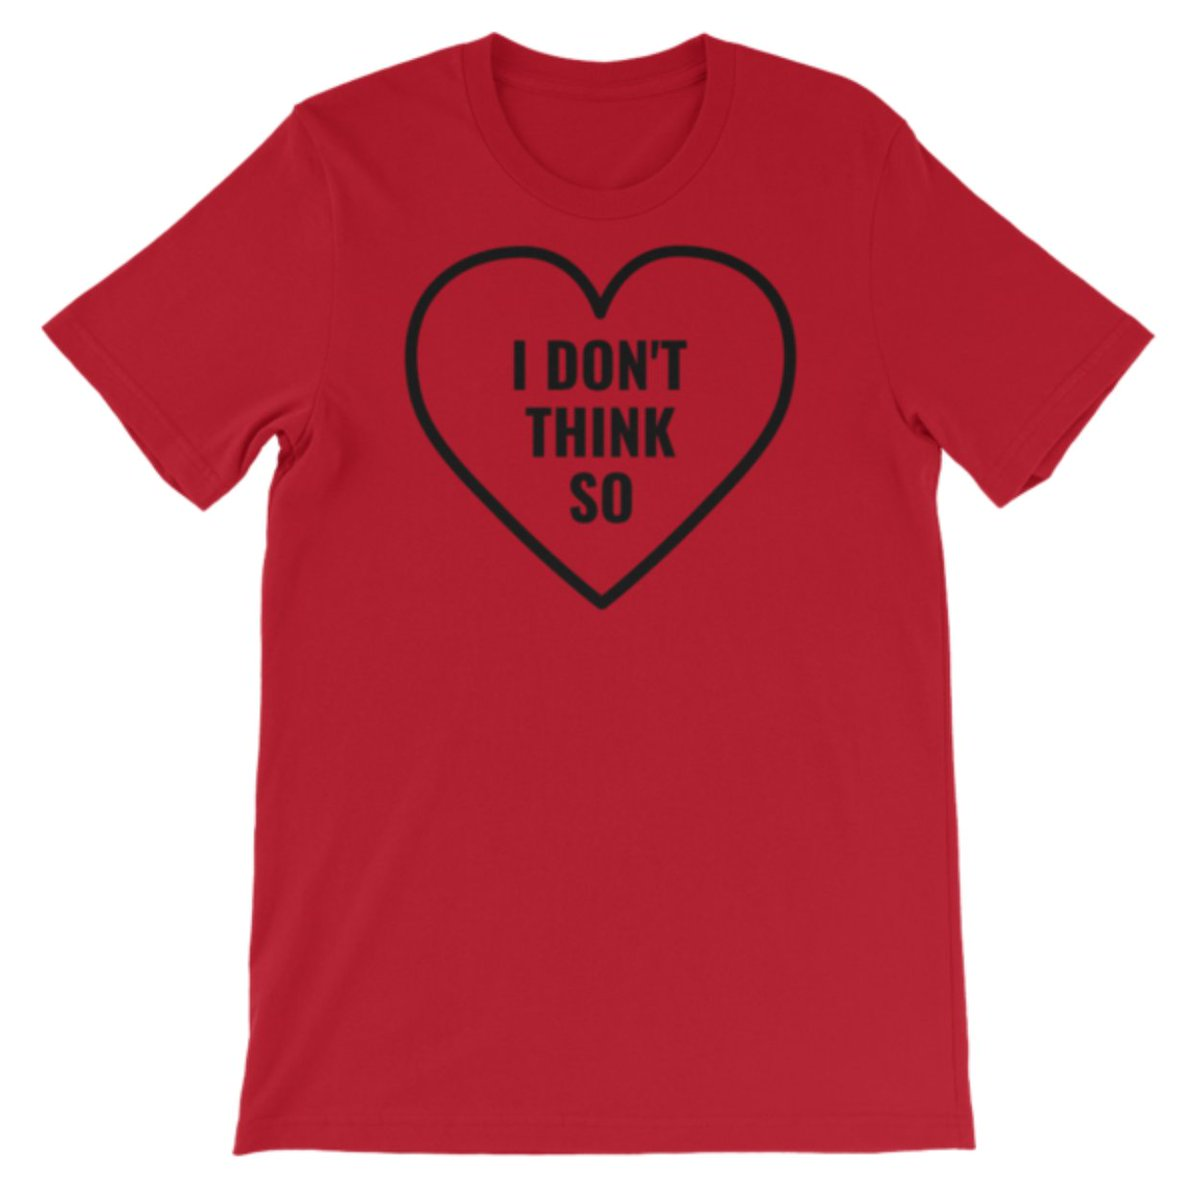 #idontthinkso or customize the message https://t.co/bn1WbgGR97 . #awesome or customize it https://t.co/3BH5W0mmof . #allographictees #candyhearts #ValentinesDay #ValentinesDayGift #ValentinesDayGifts #gift #giftidea #giftideas #valentine #bemyvalentine #conversationstarter https://t.co/KpYvdghQLC